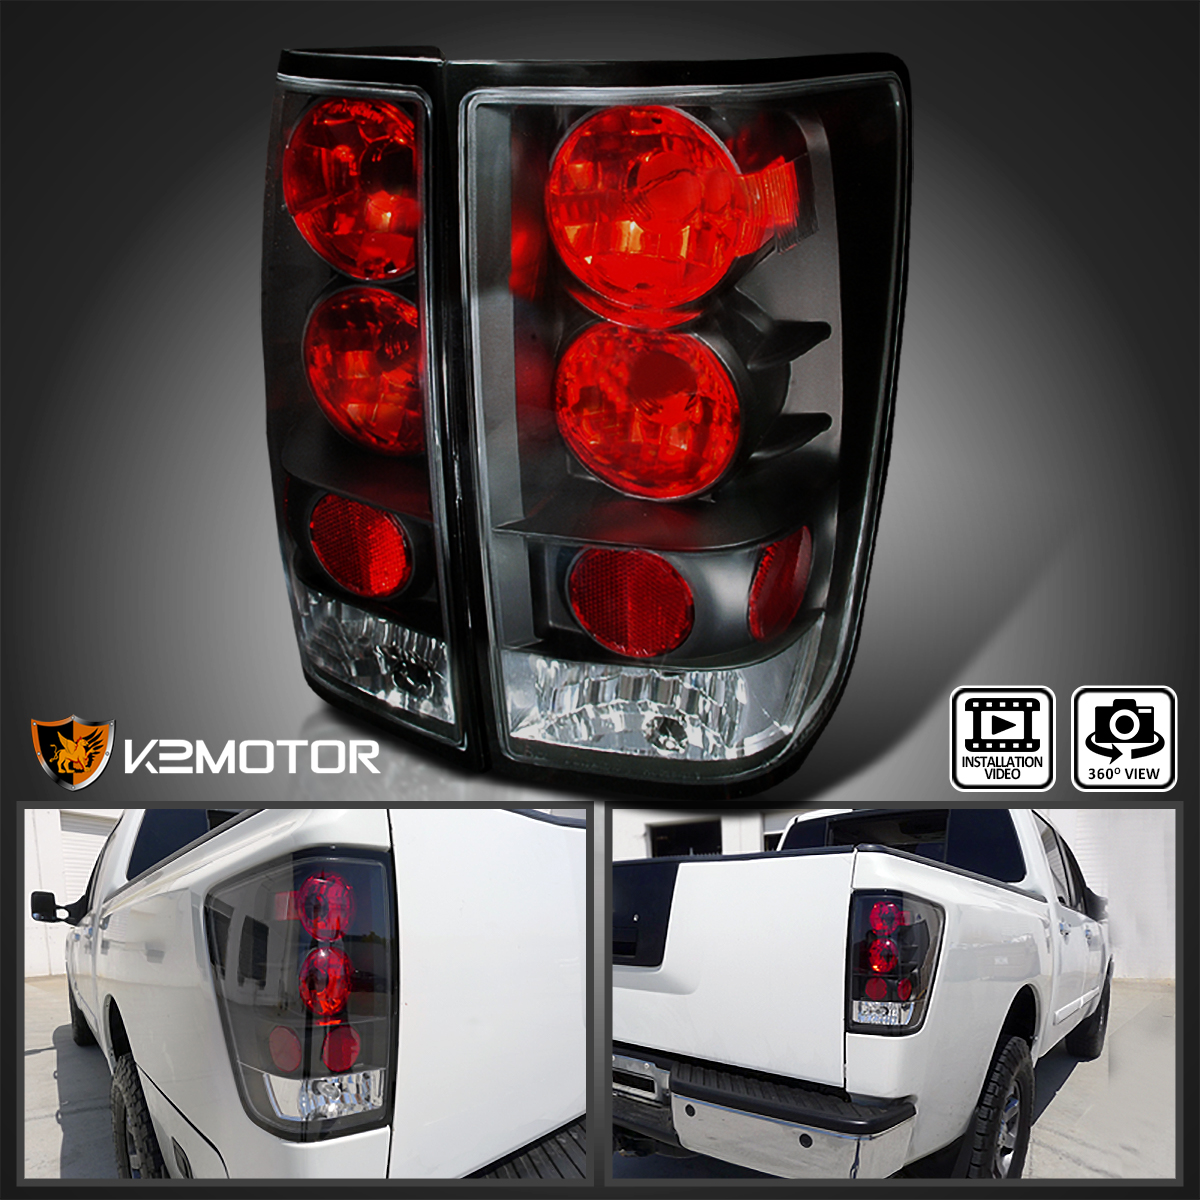 Details about Fits 2004-2015 Nissan Titan Rear Brake Lamps Tail Lights  Black Pair Left+Right